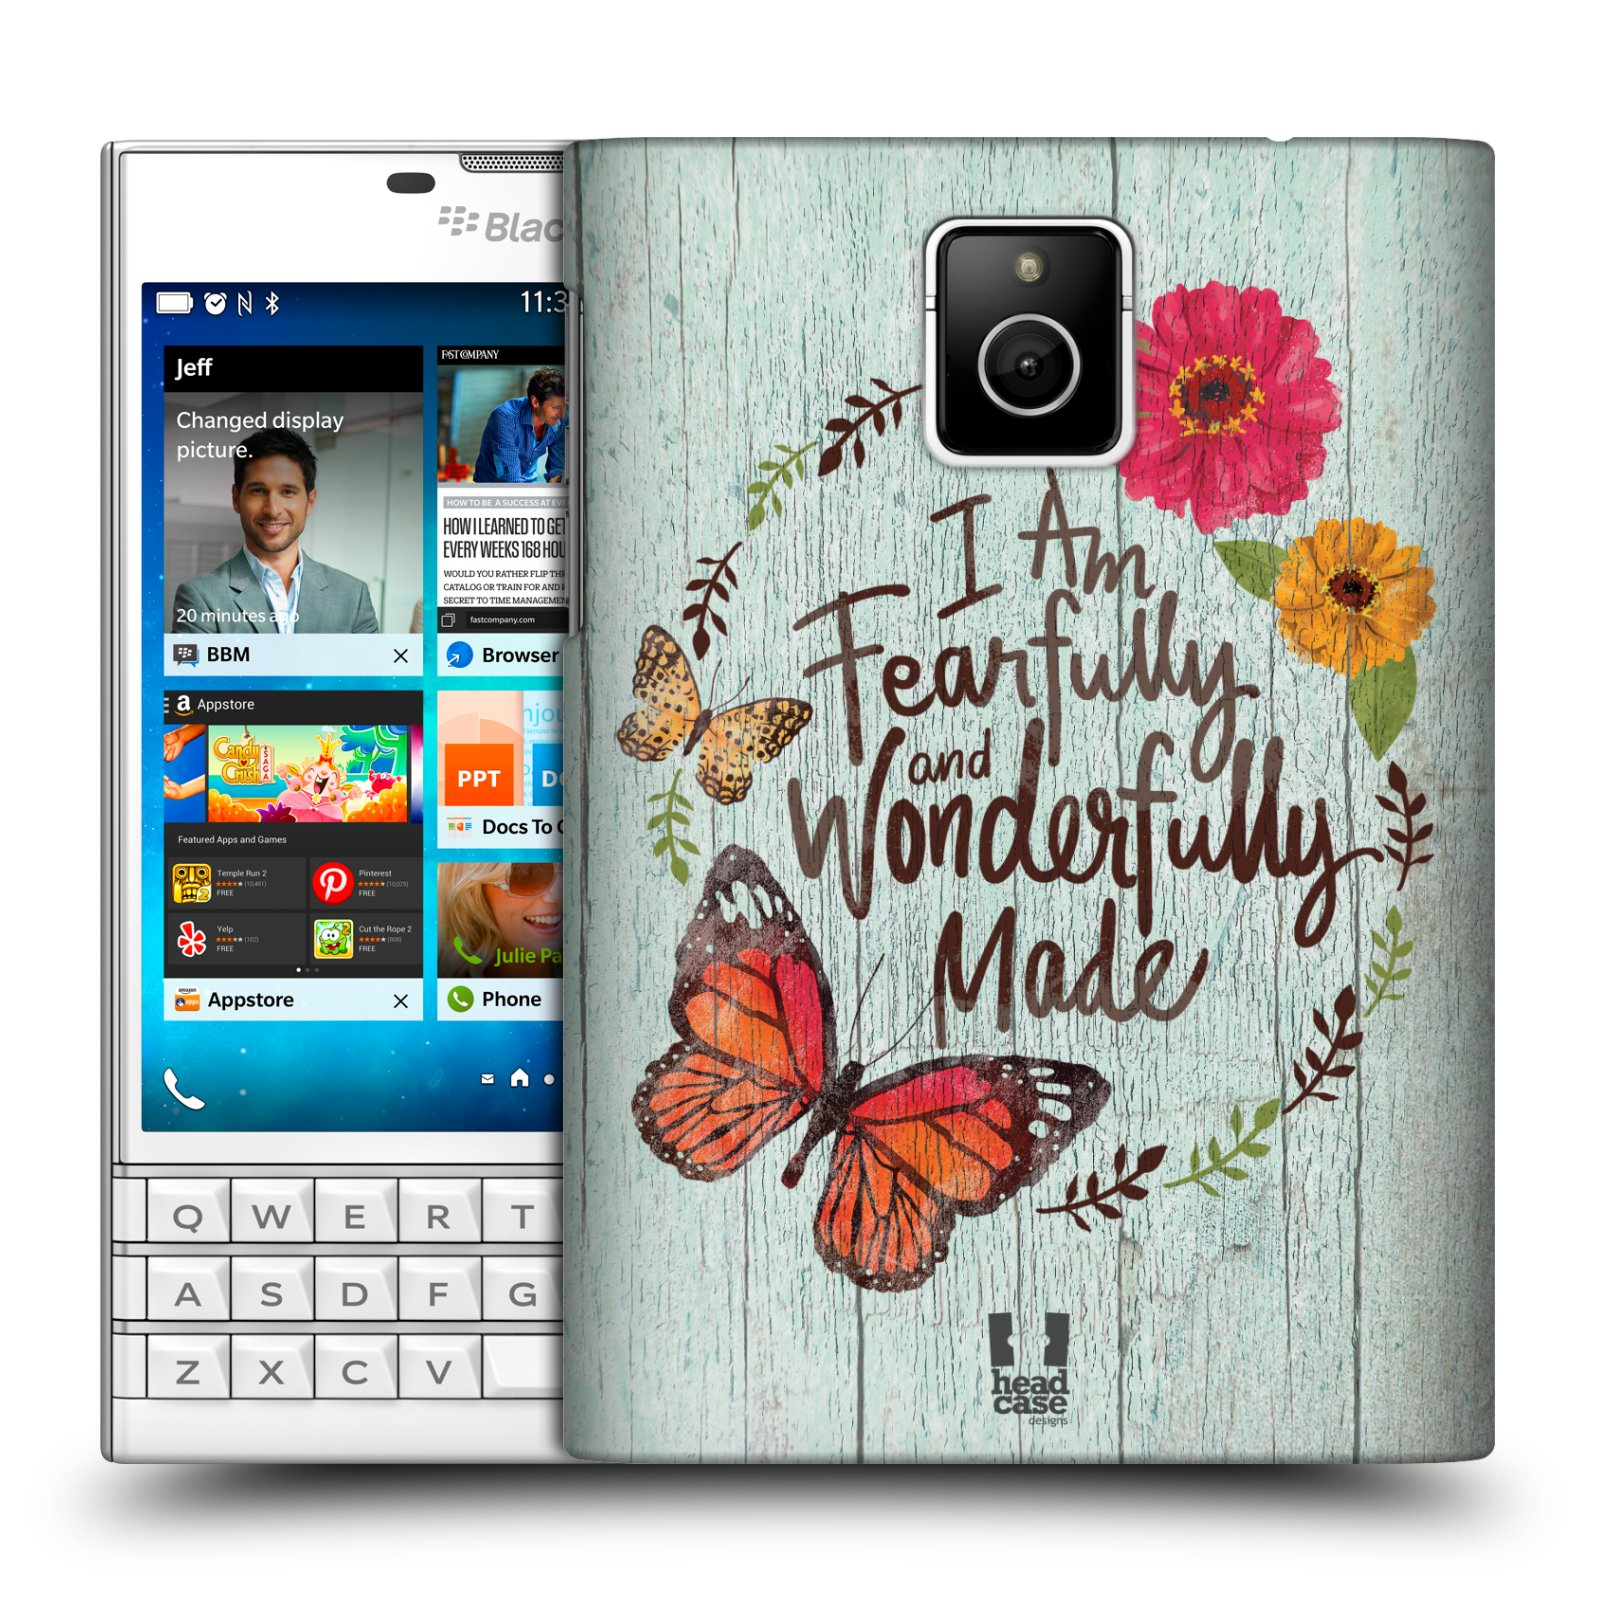 Plastové pouzdro na mobil Blackberry PASSPORT HEAD CASE LIFE IN THE COUNTRY WONDERFULLY (Kryt či obal na mobilní telefon Blackberry PASSPORT)